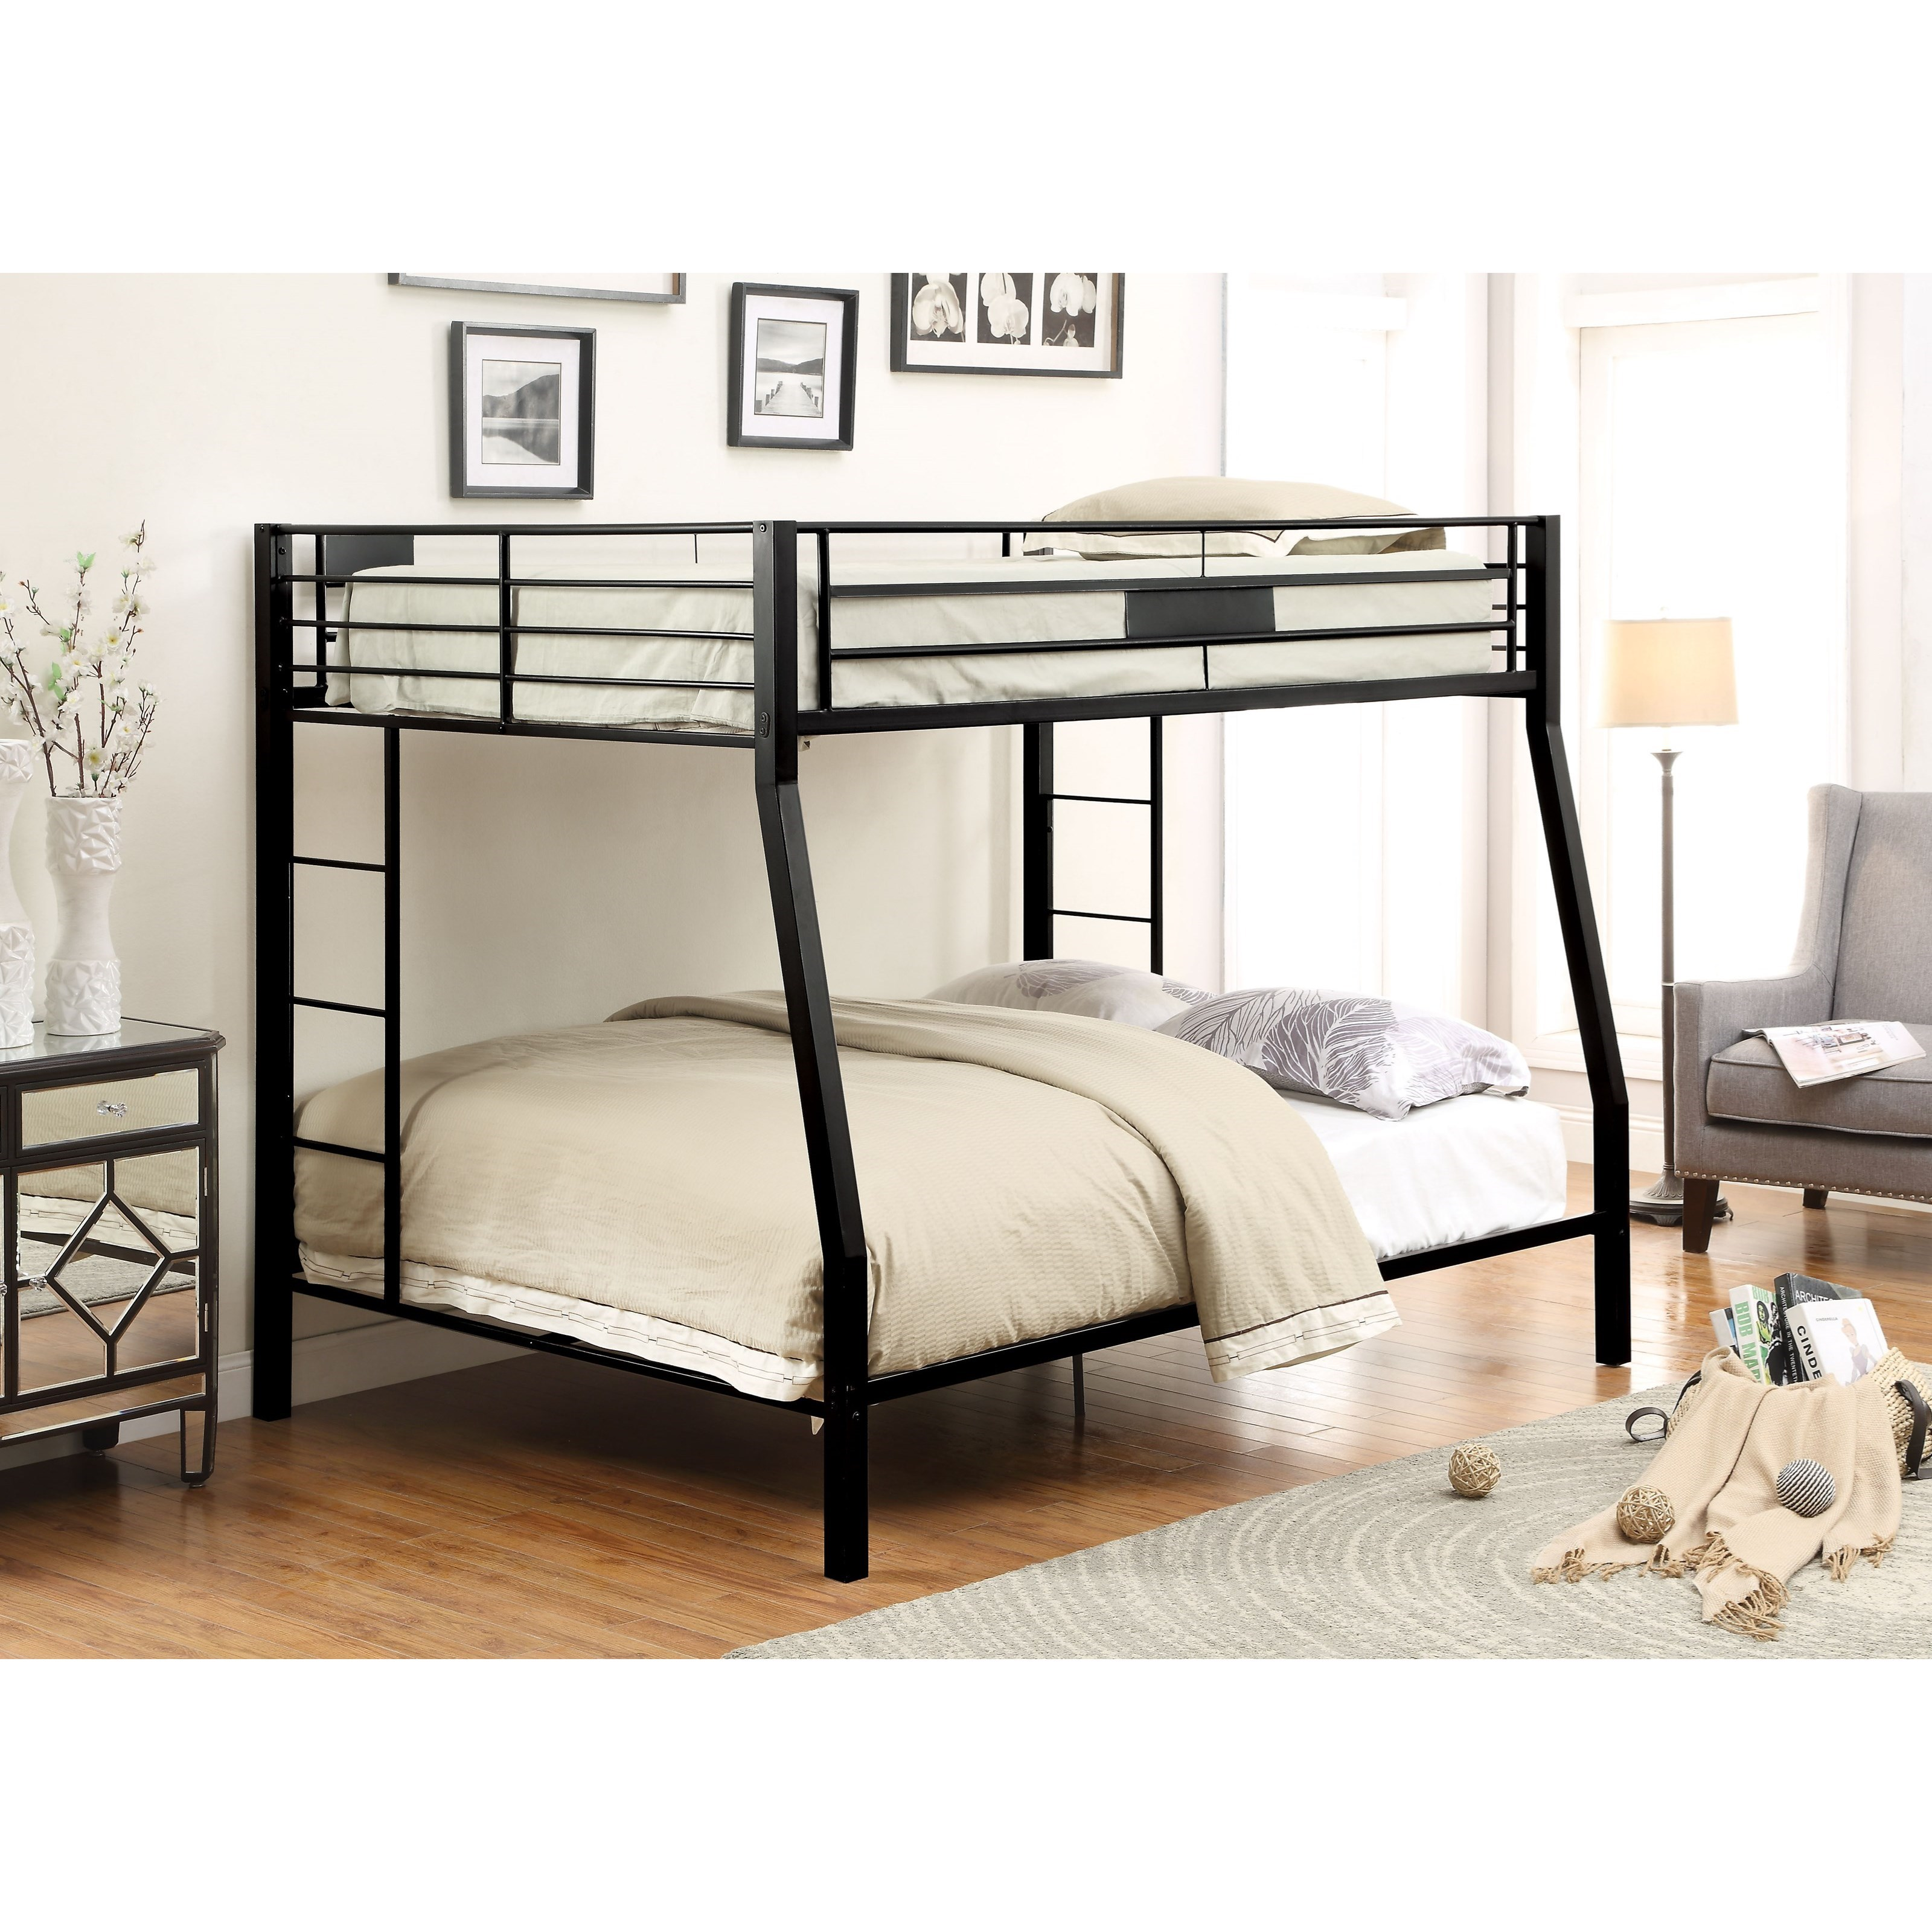 Limbra Full XL Over Queen Bunk Bed by Acme Furniture at Carolina Direct